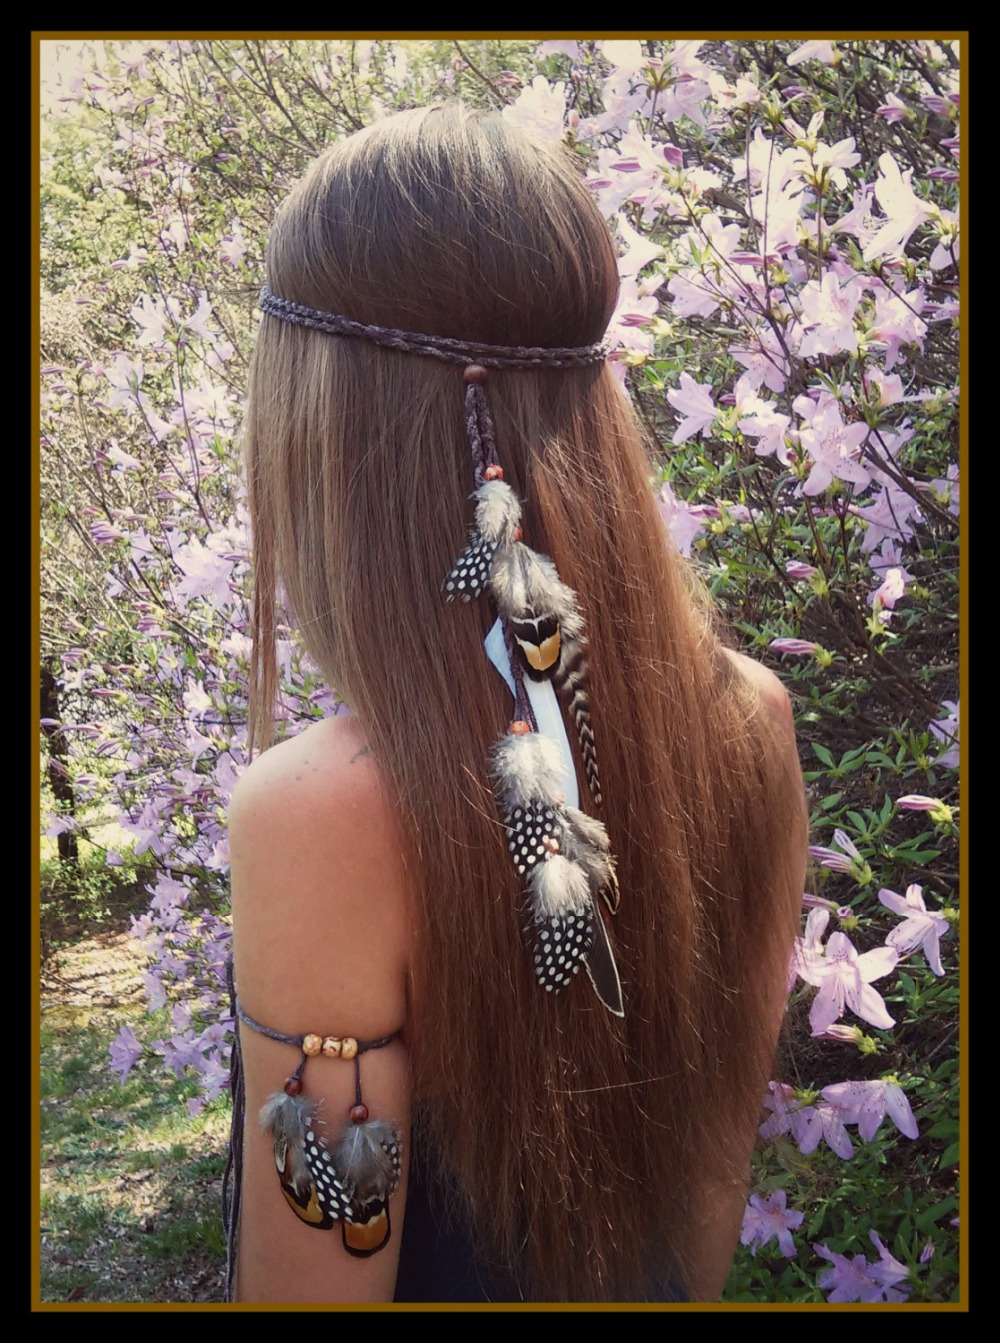 Indian Handmade Tribal Hair Feather Beads Rope Head pieces Gypsy Beautiful Boho Headband Hairband Armlet Hippie Jewelry Sets